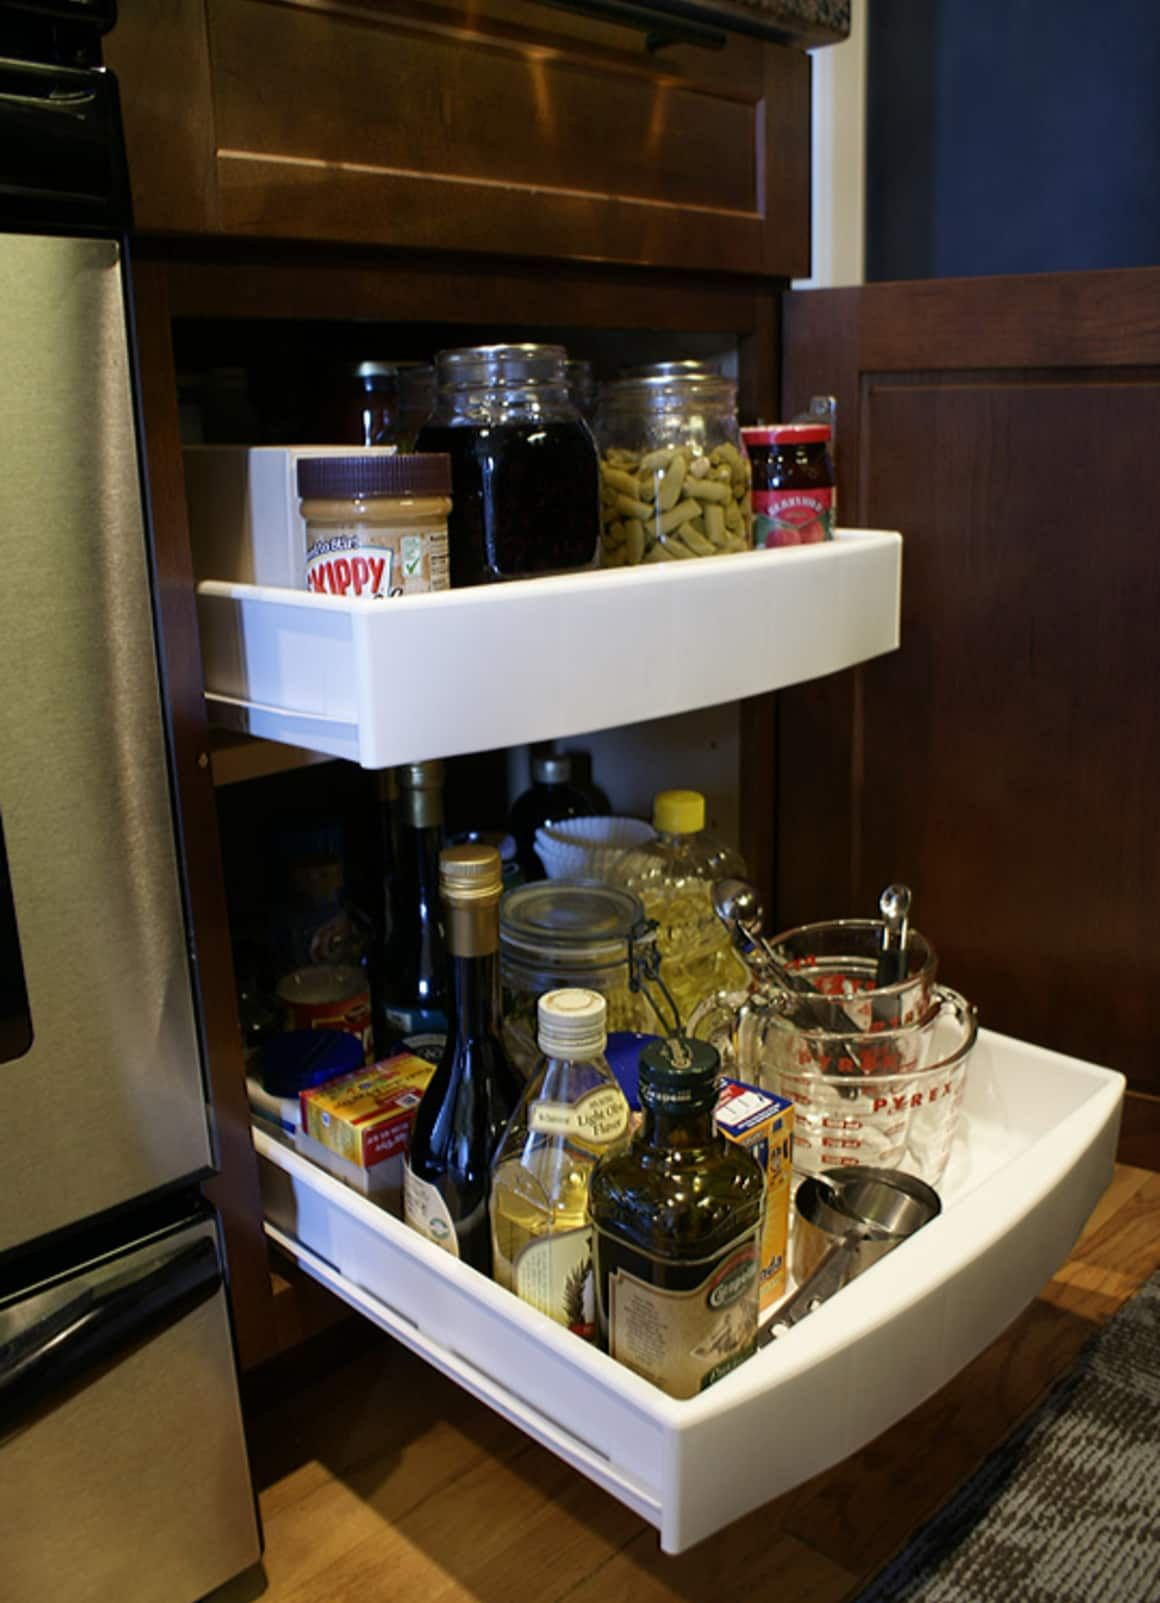 Converting Kitchen Shelves Into Drawers Kitchen Shelves Kitchen Drawers